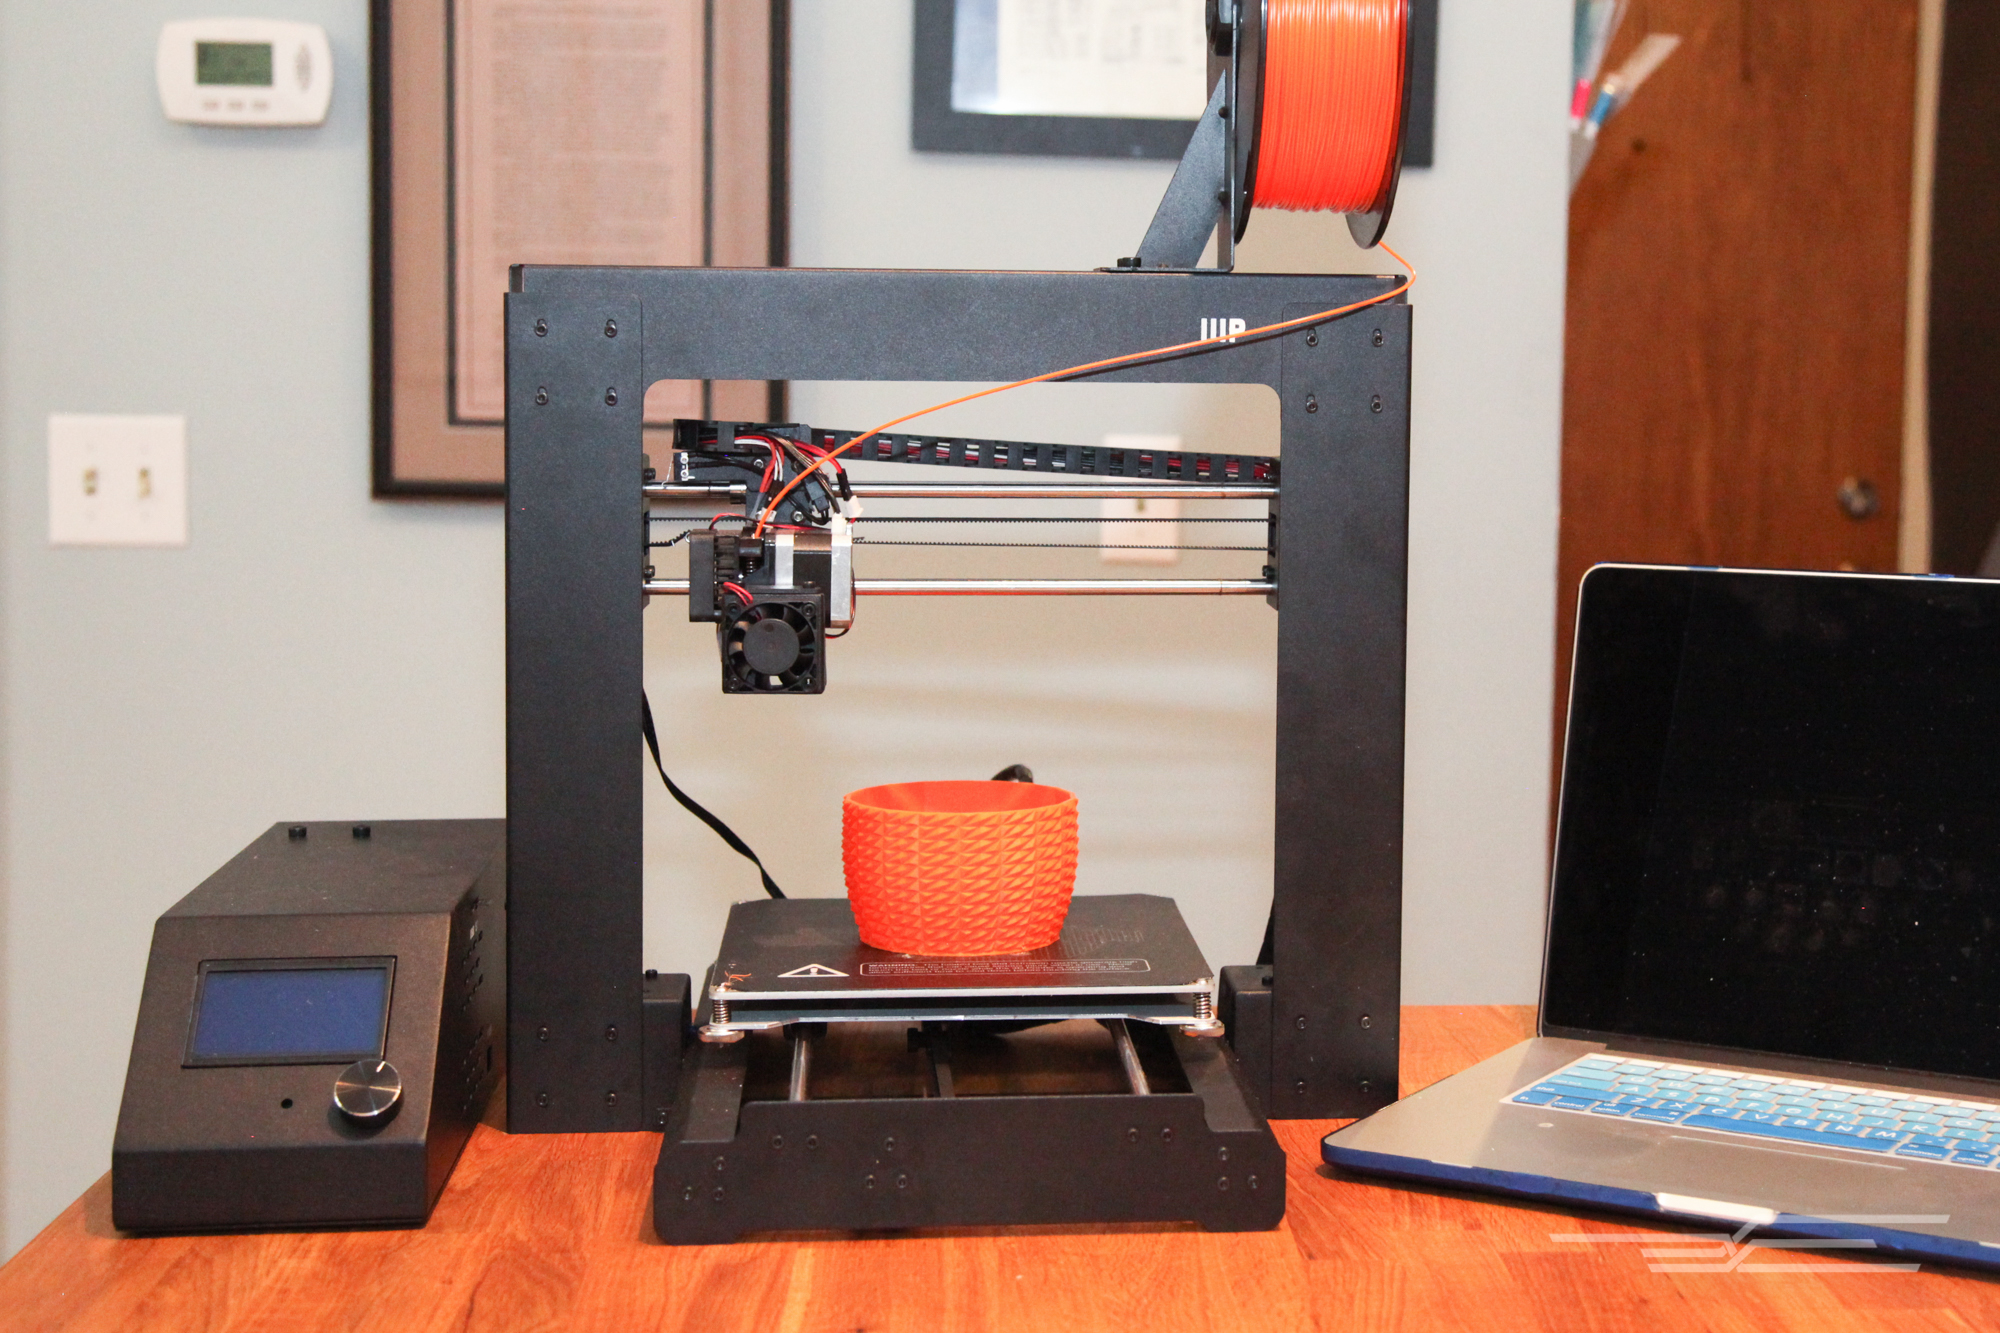 The Best Home 3d Printer For Beginners So Far